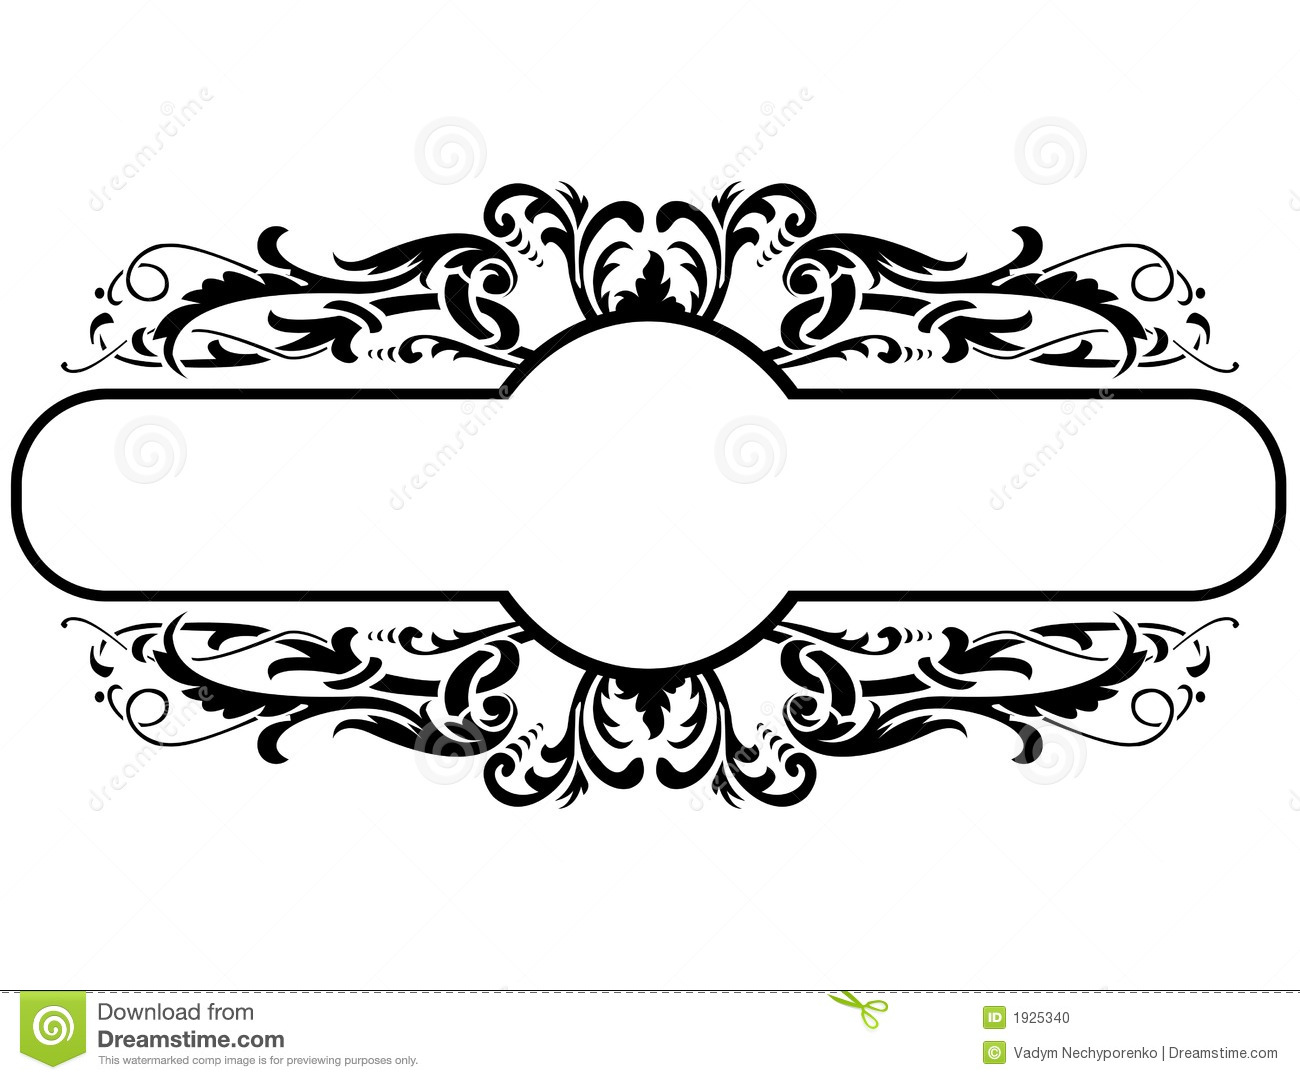 Floral Decoration black frame with floral decoration, vector illustration stock